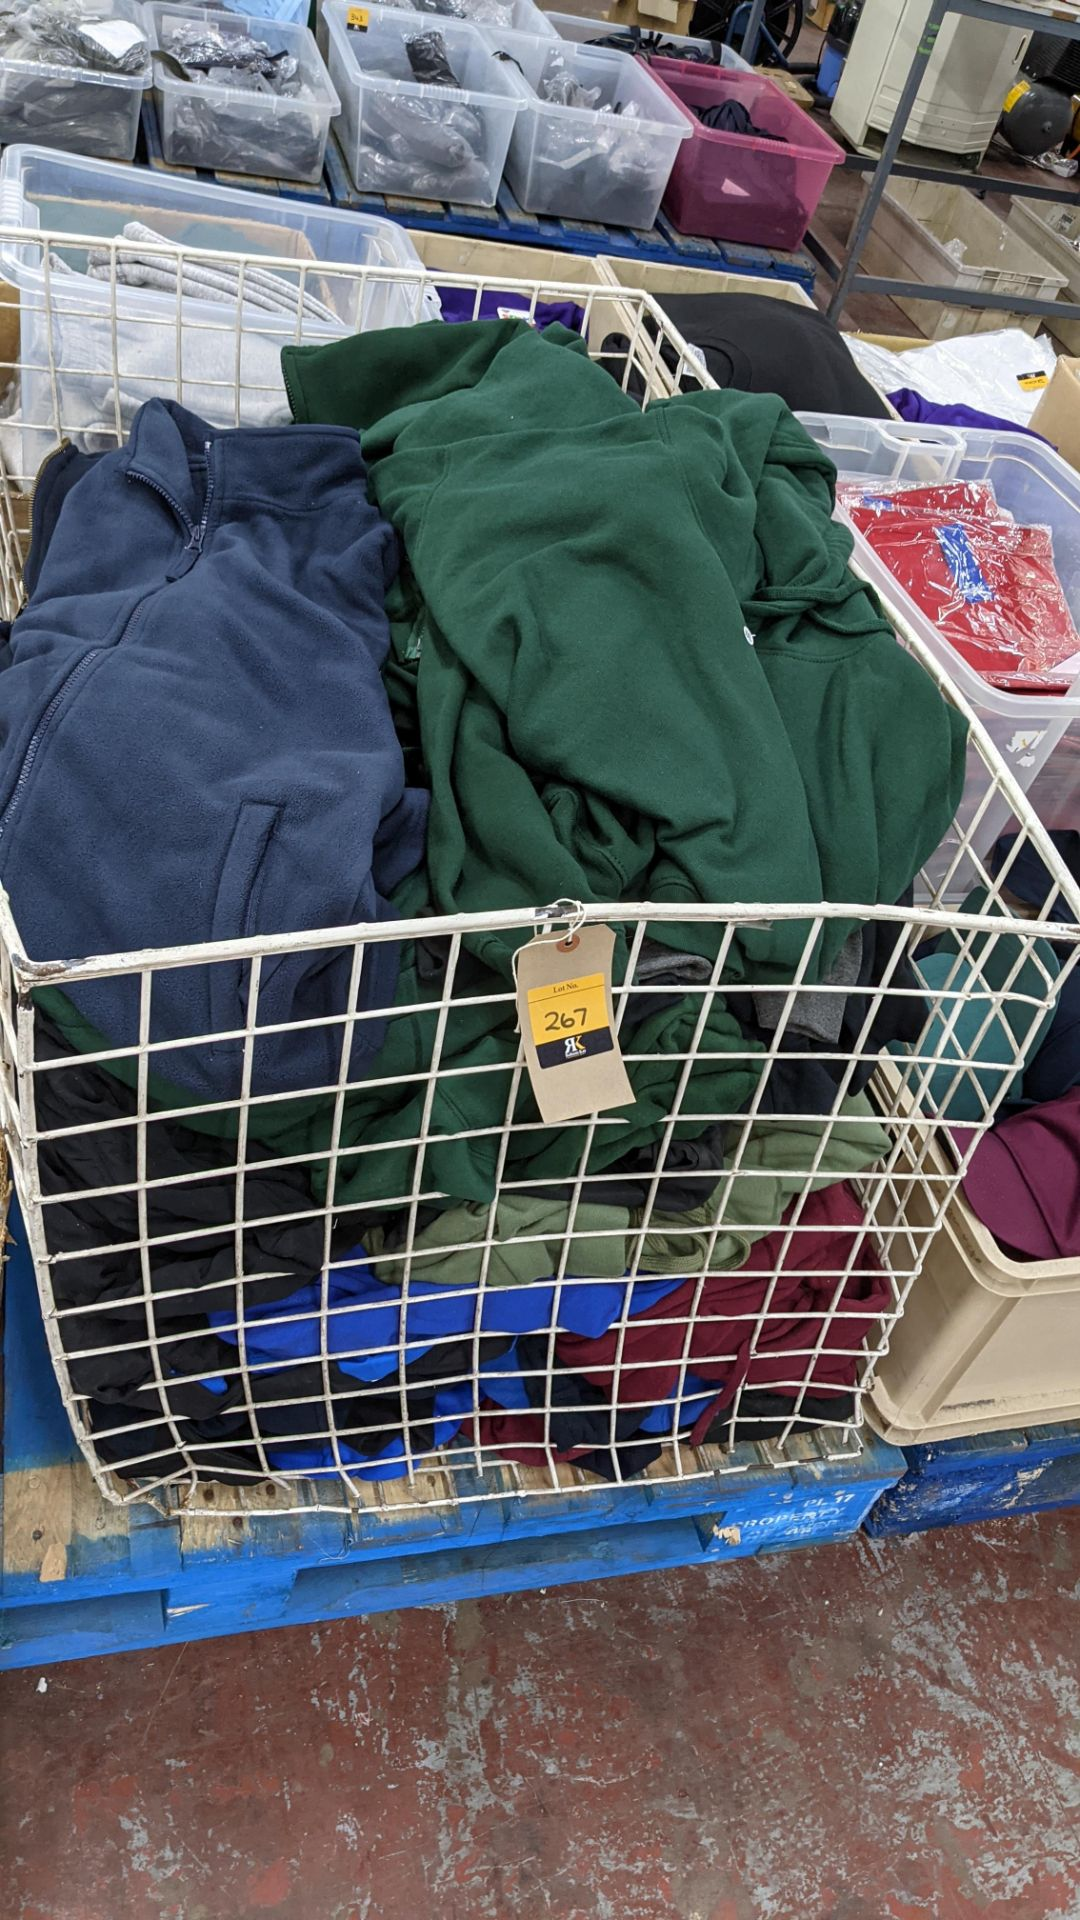 Large quantity of fleece tops - the contents of large cage. NB cage excluded